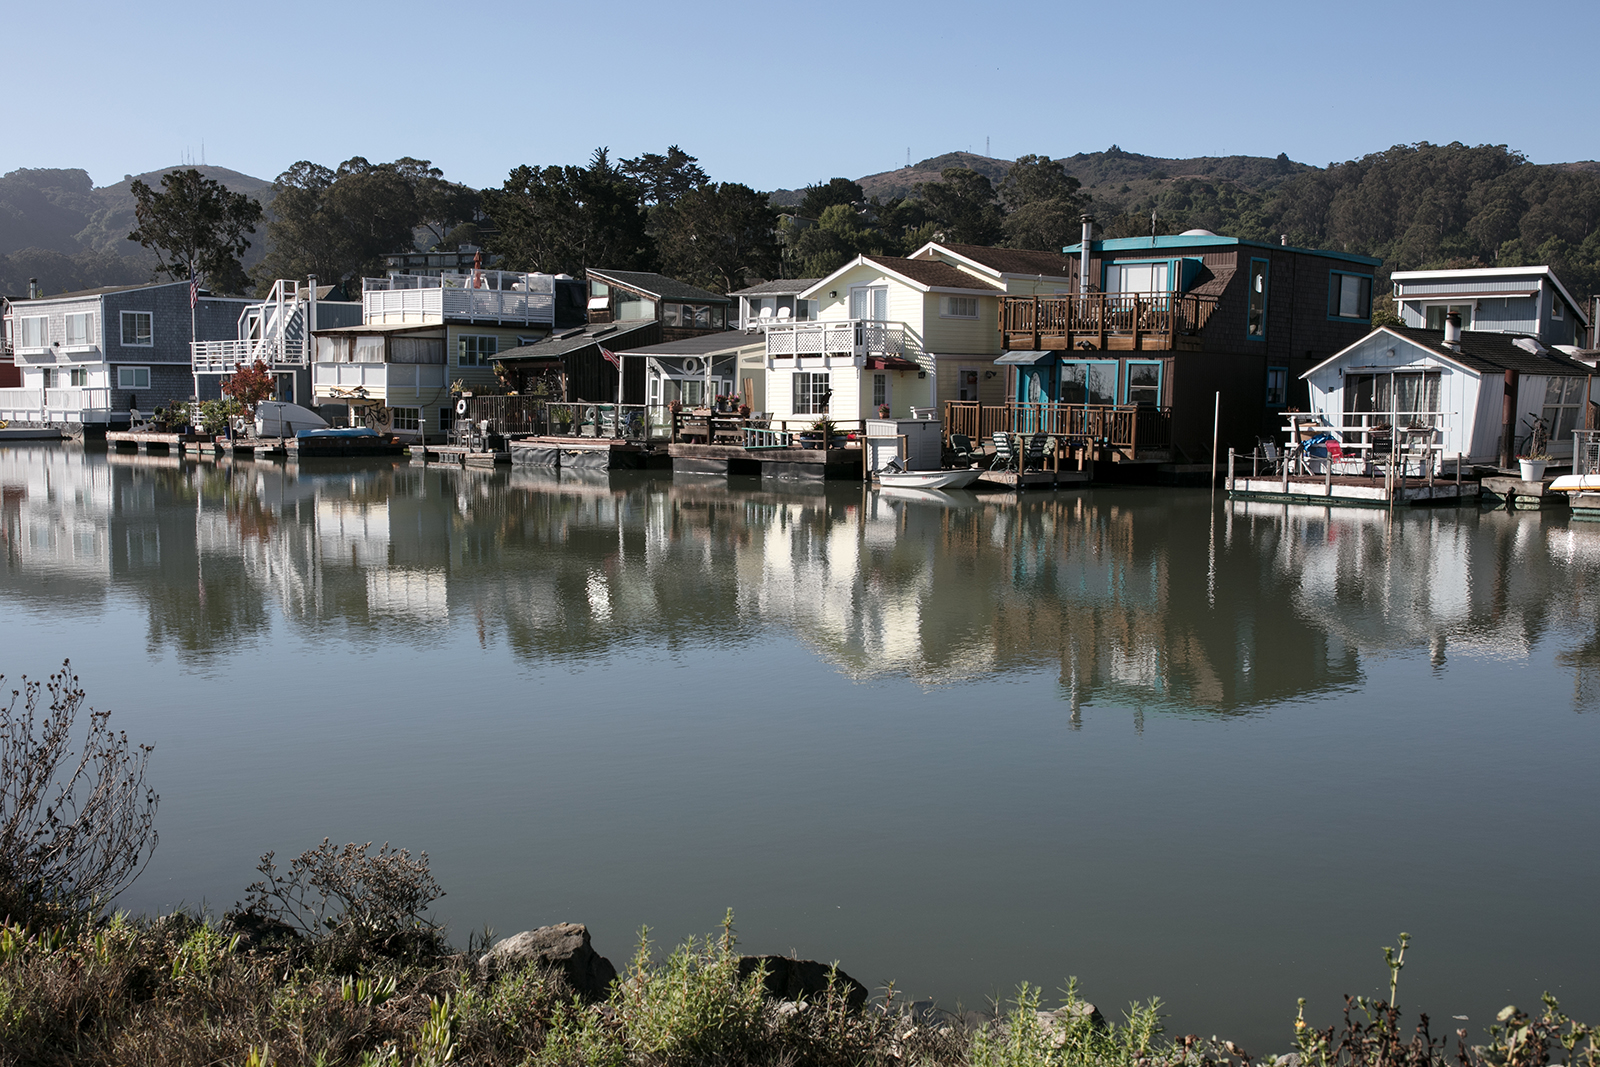 Visiter Sausalito et les house boats